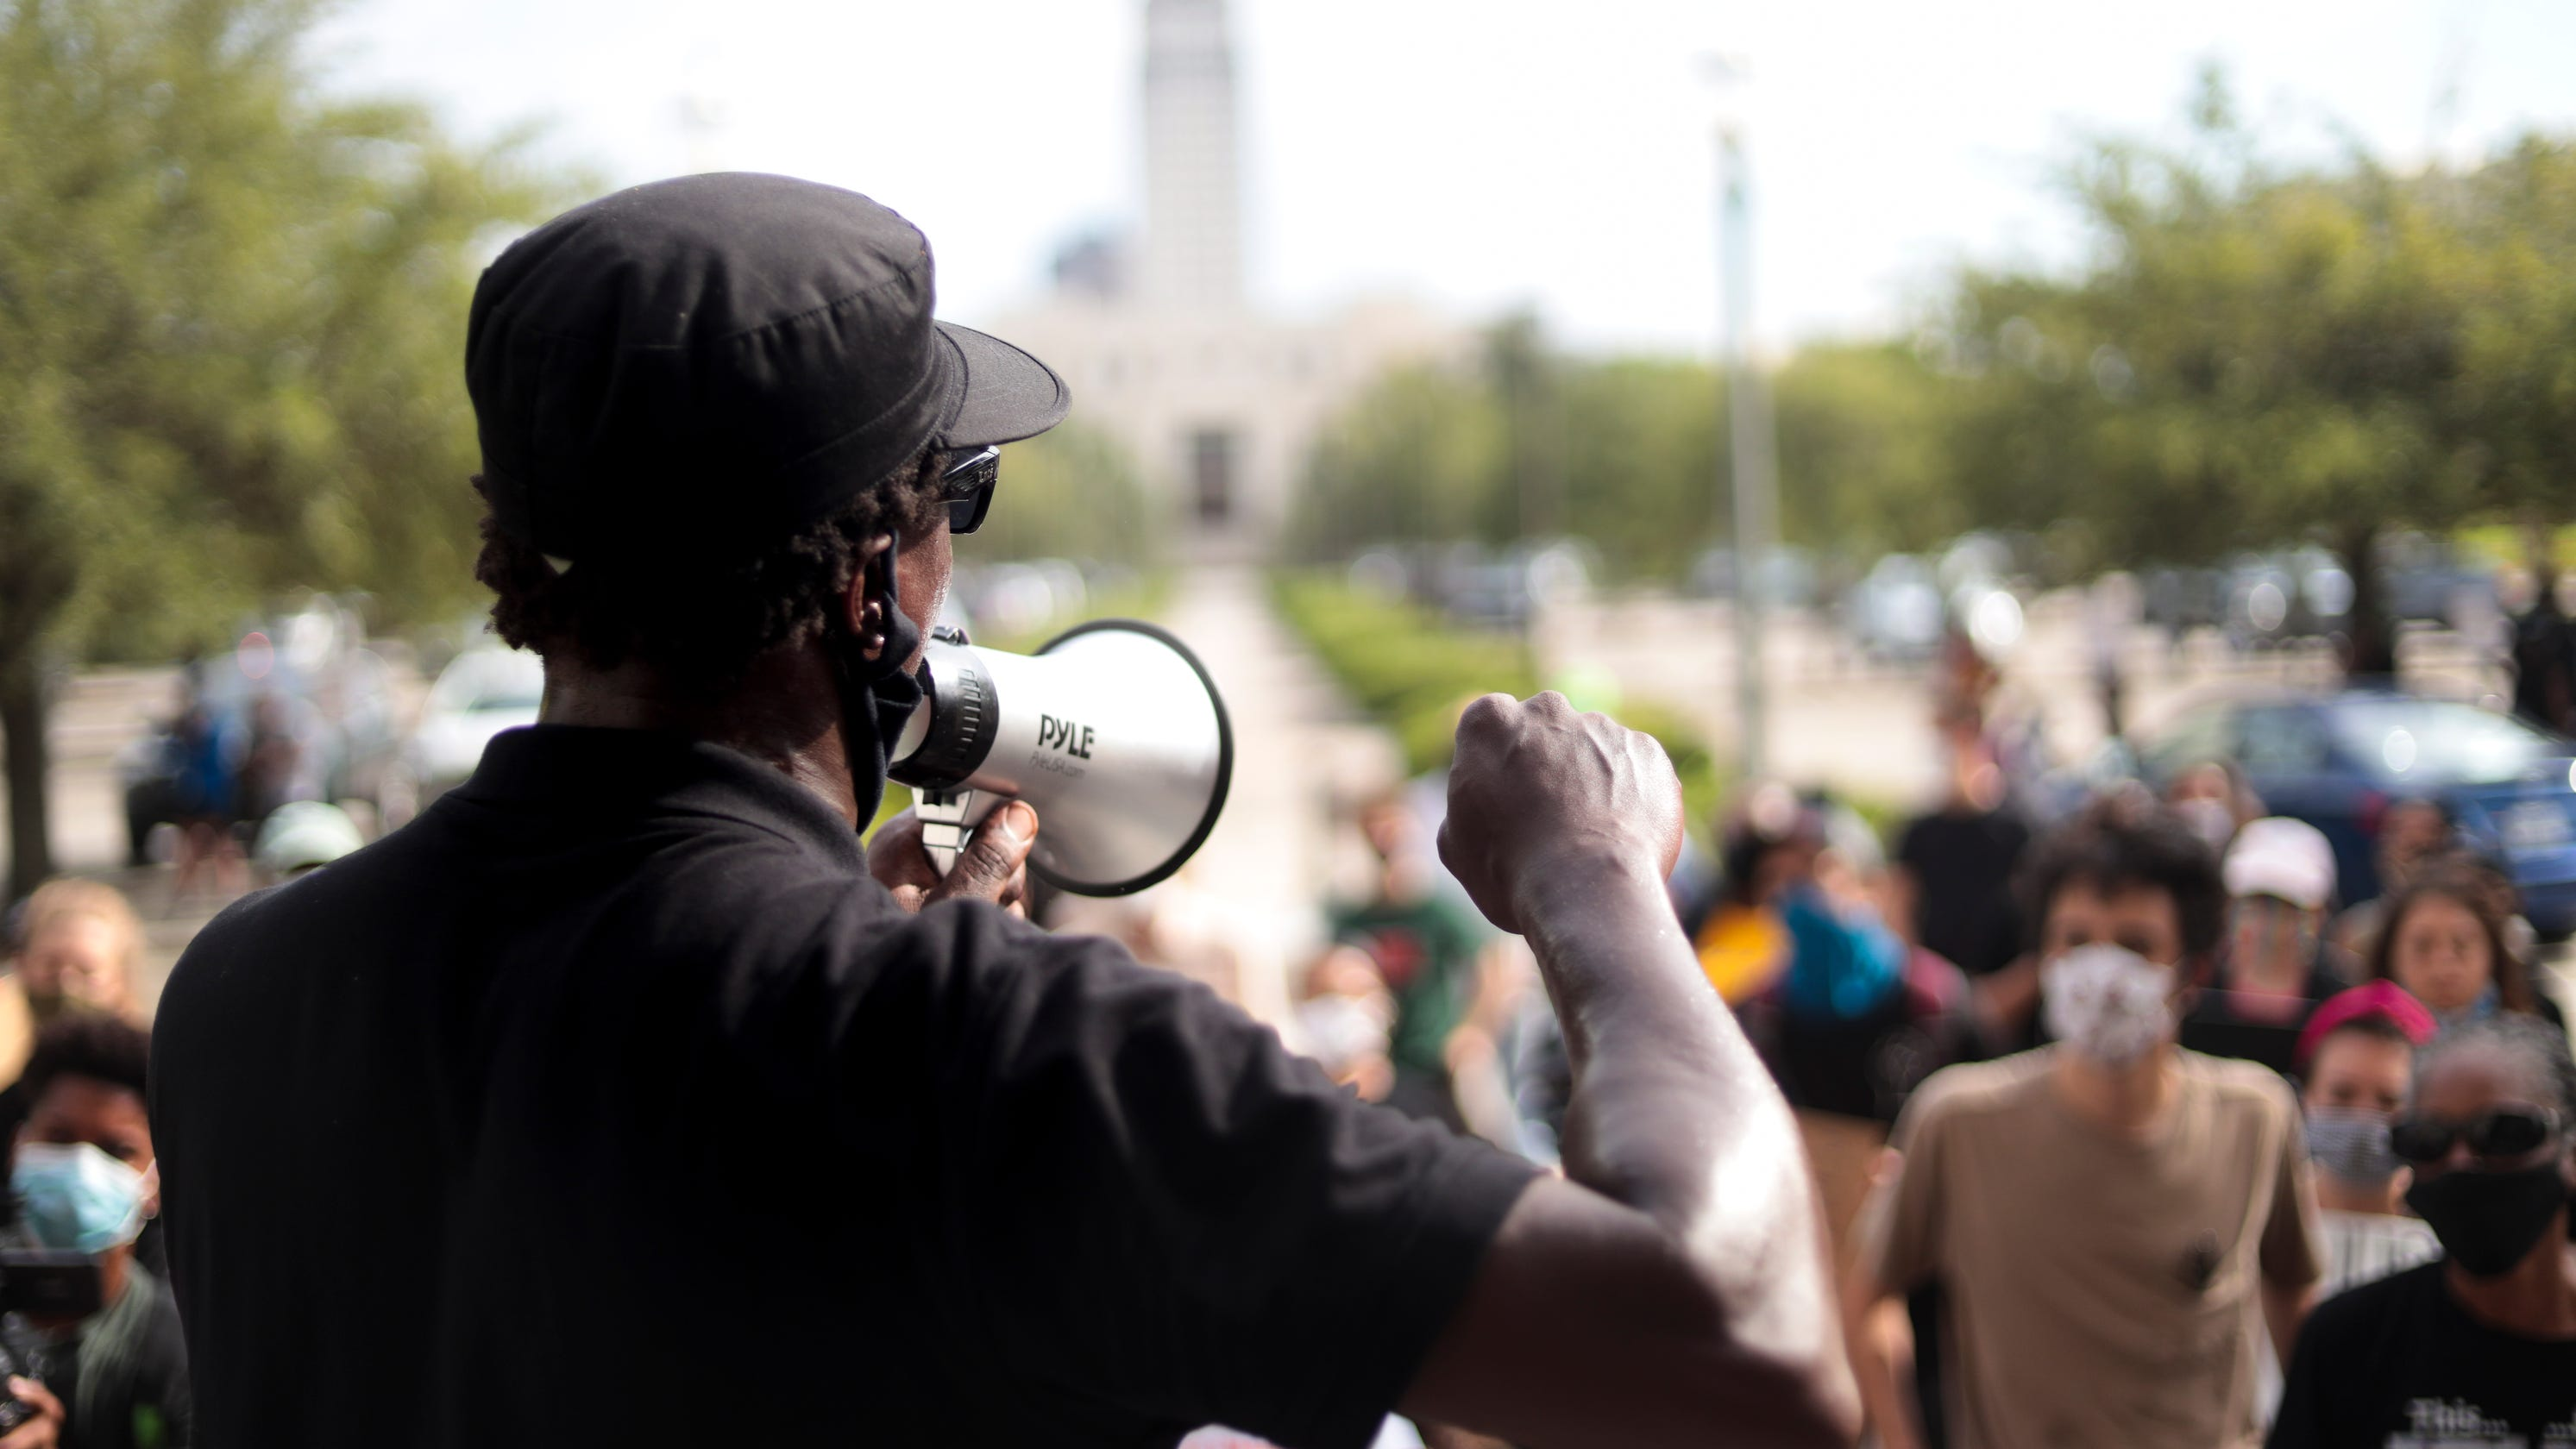 Lafayette police shooting: Families, marchers protest in Baton Rouge seeking justice